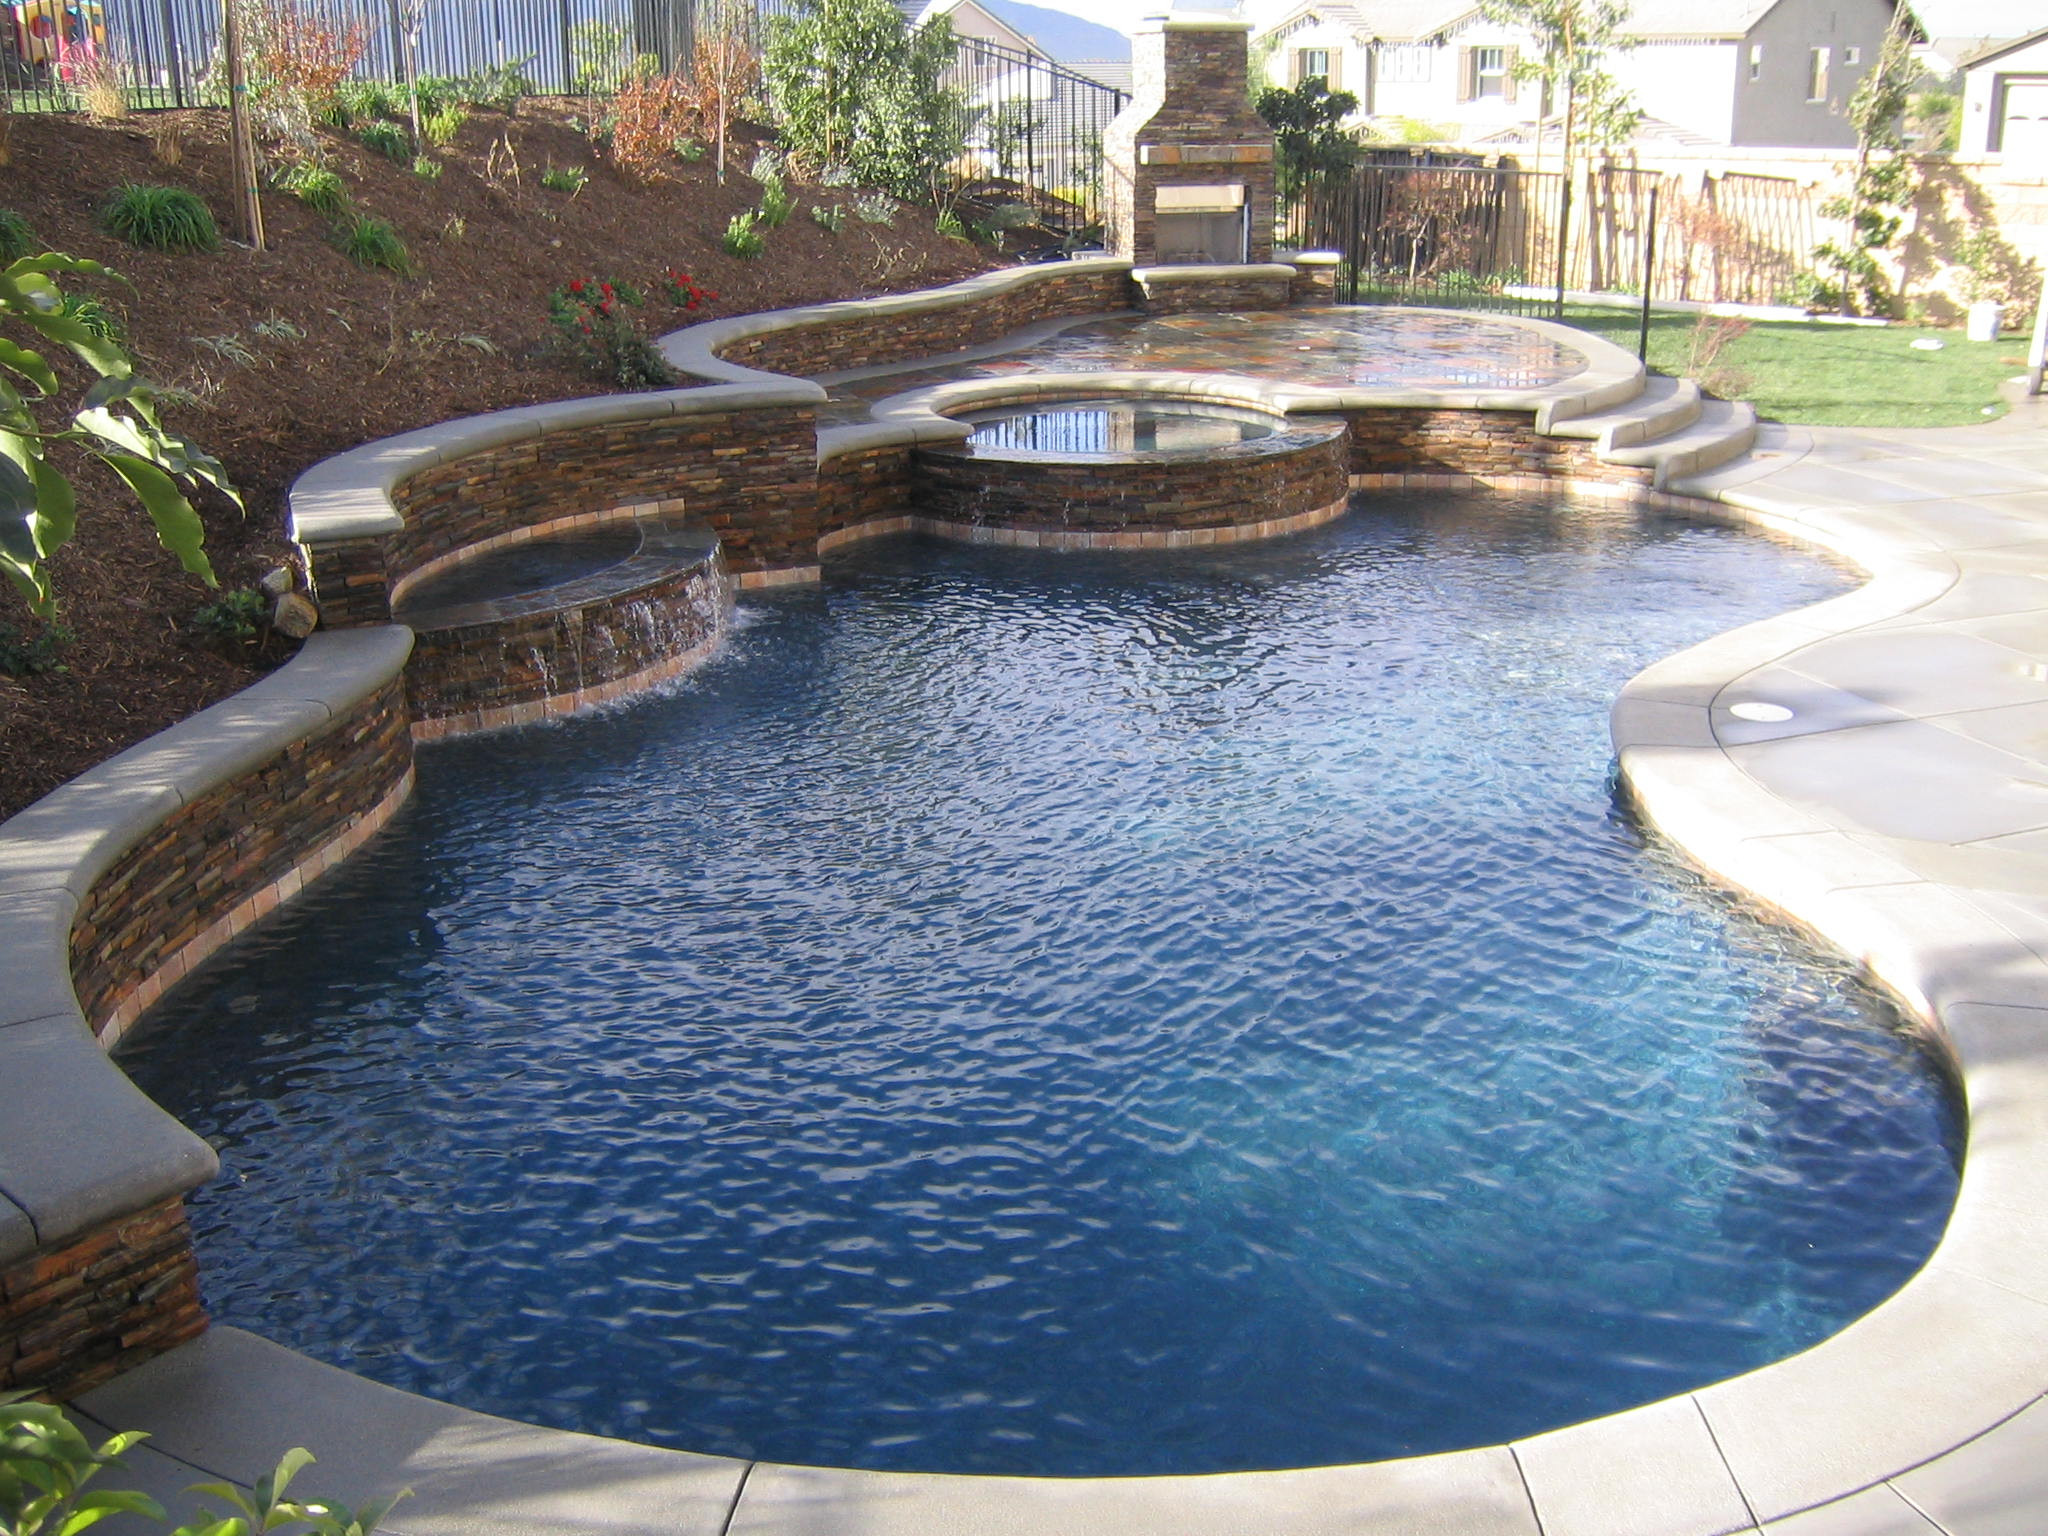 Best ideas about Backyard Pool Ideas . Save or Pin 35 Best Backyard Pool Ideas – The WoW Style Now.